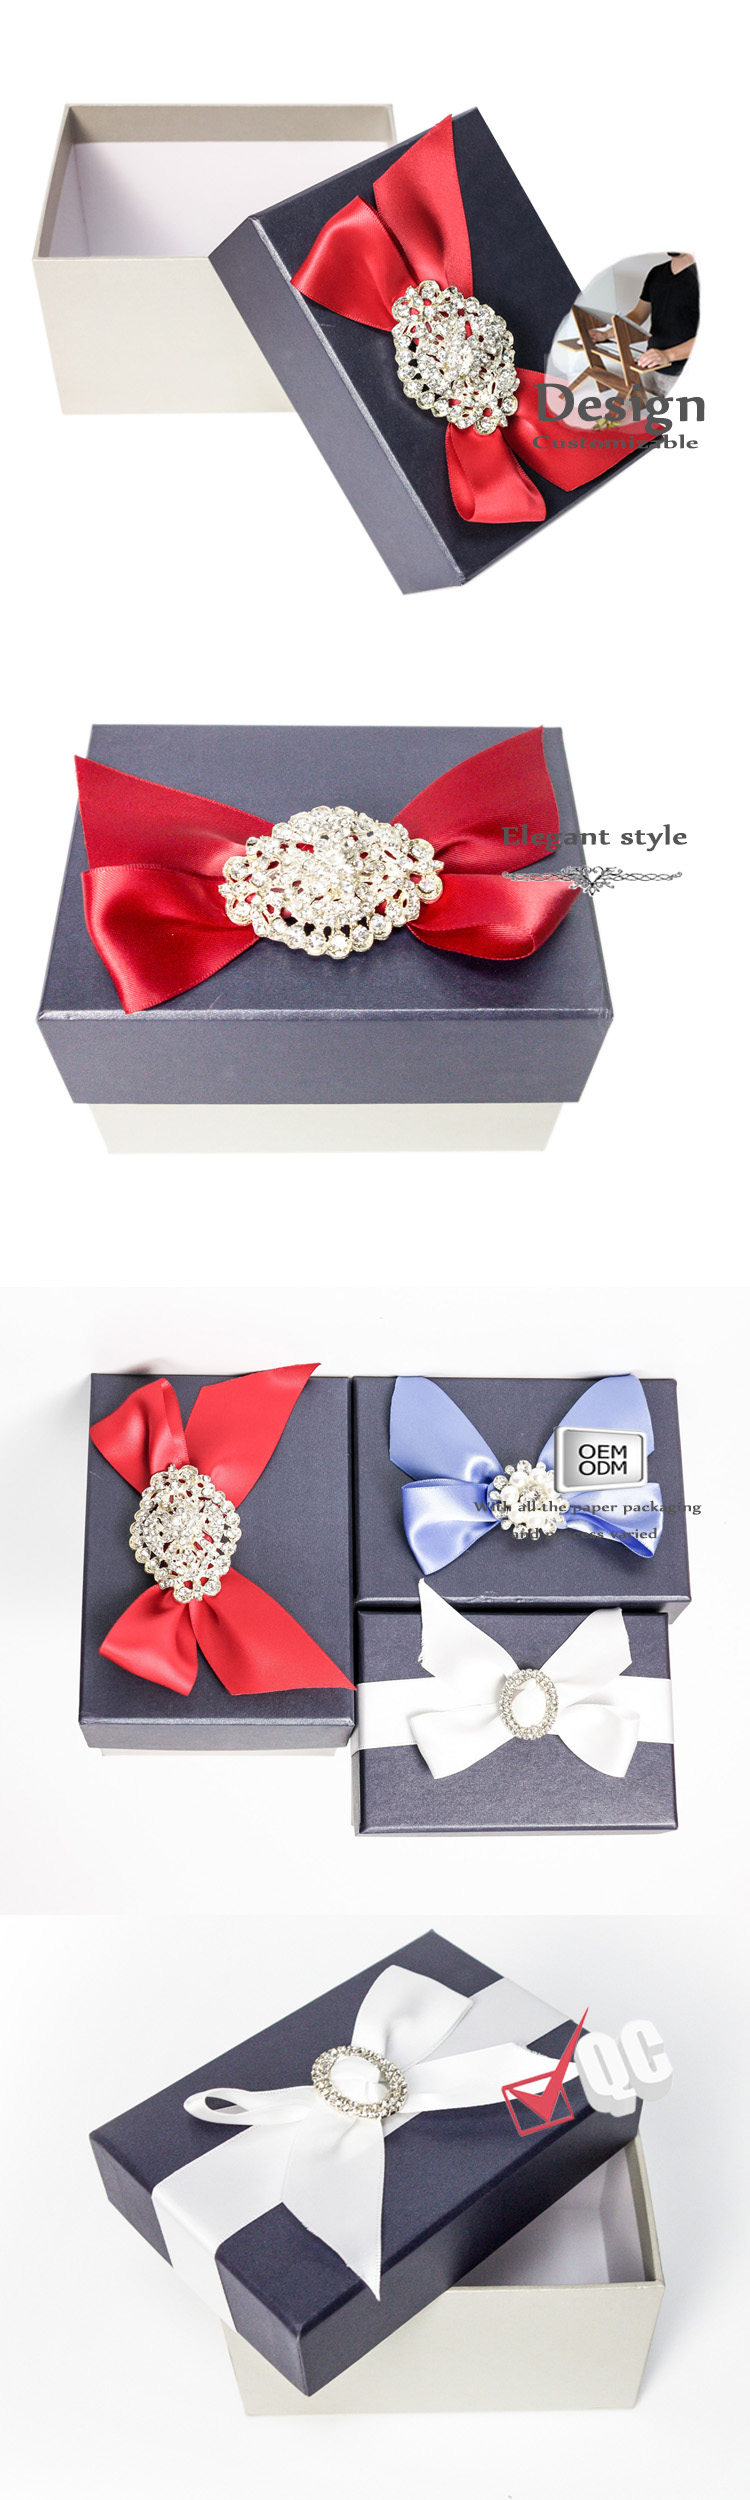 Paper candy gift box with bowknot